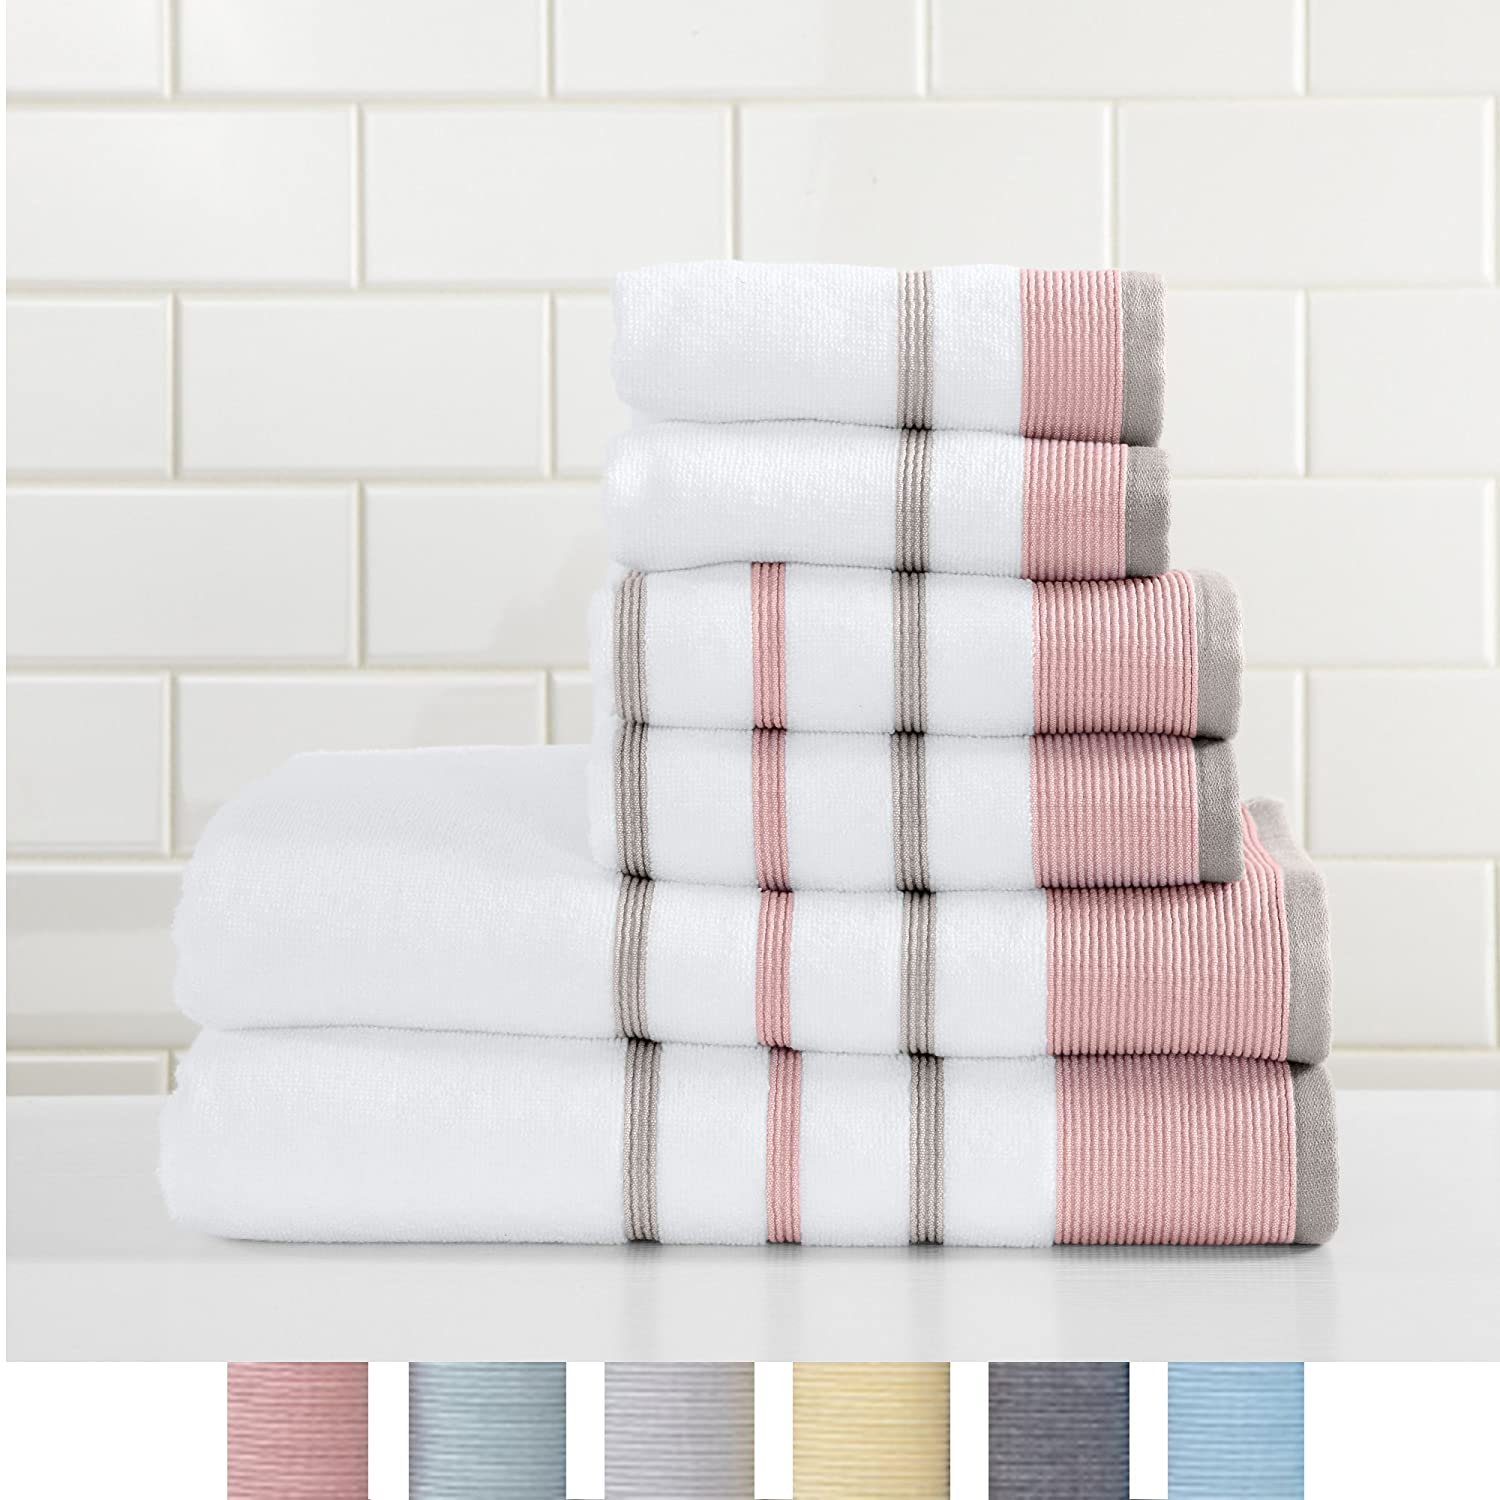 Great Bay Home 2-Pack Luxury Hotel//Spa 100/% Turkish Cotton Striped Bath Towels Includes 2 Bath Towels 500 GSM Bath Towels, Glacier Grey//Cappuccino Noelle Collection Brand.